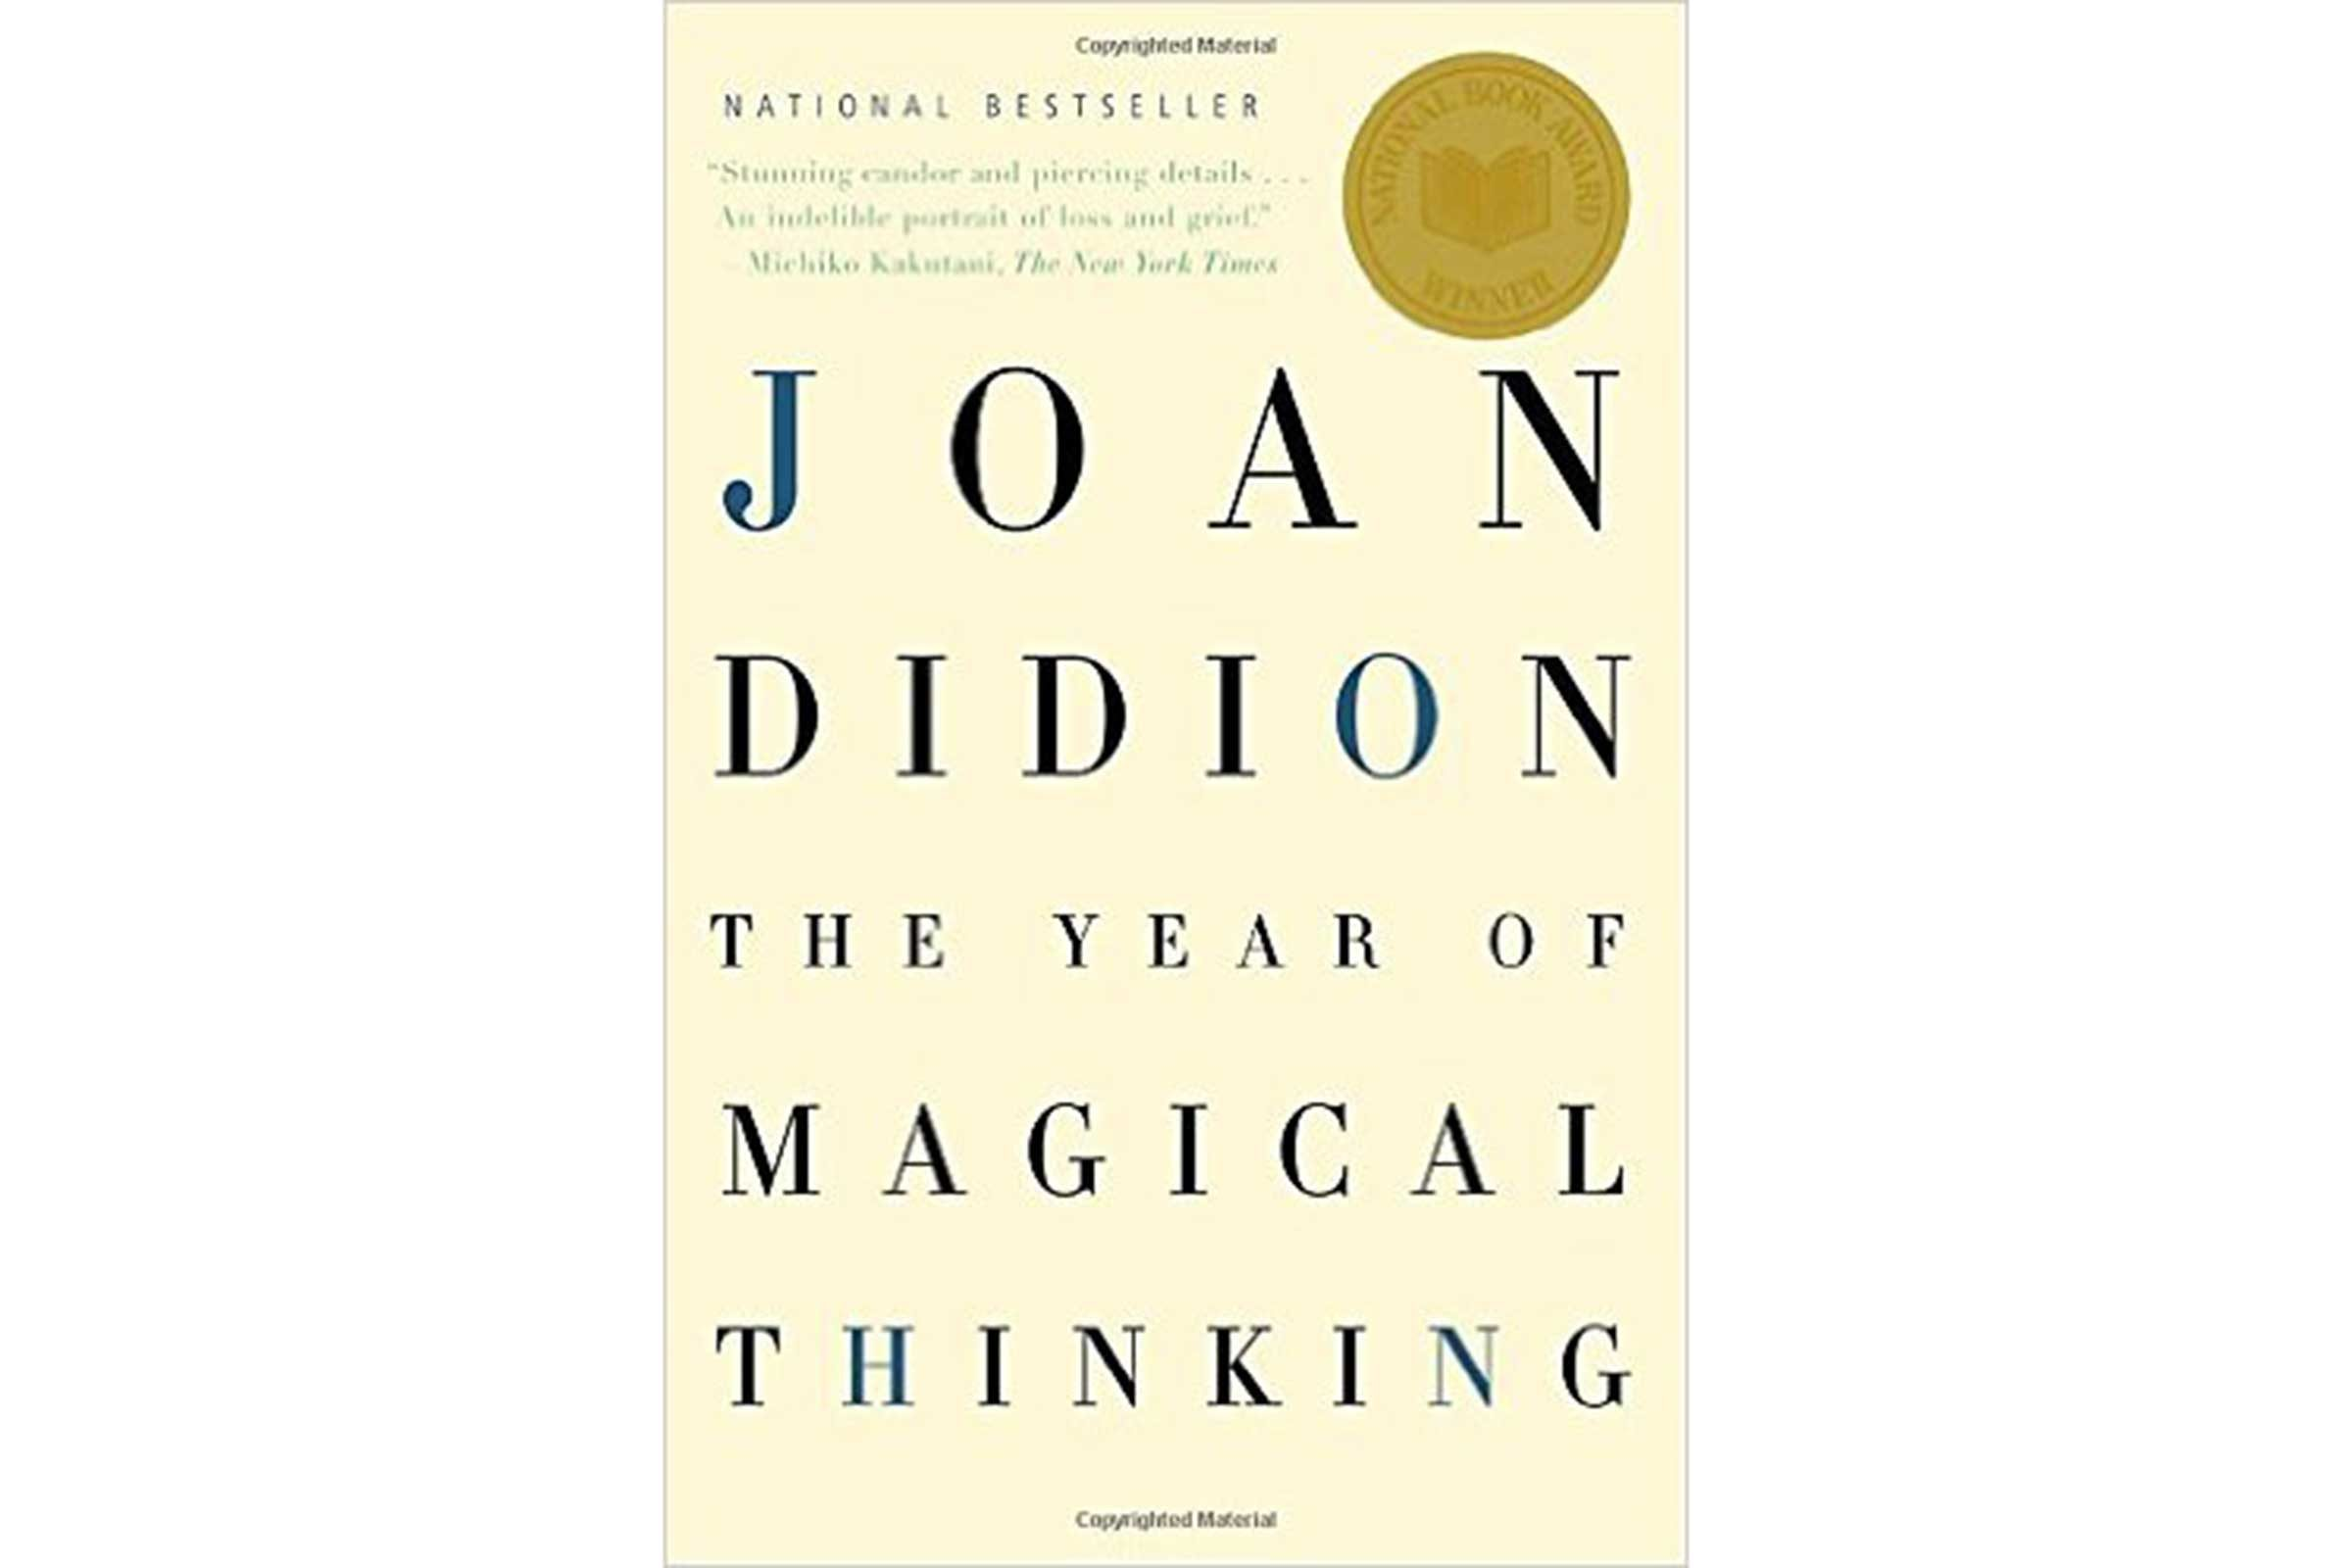 The Best Autobiographies You Should Read | Reader's Digest